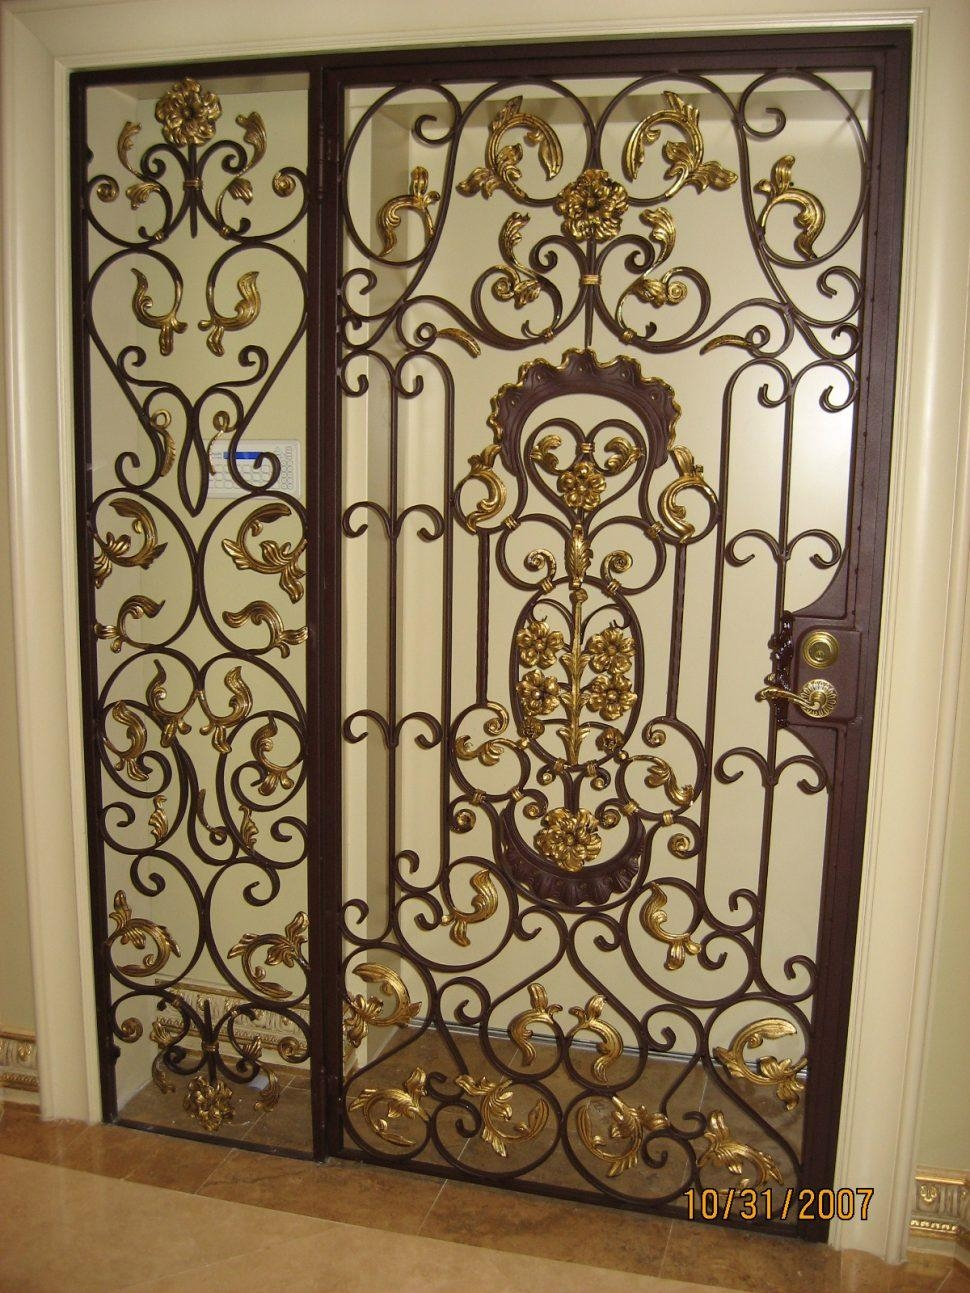 Bedroom : Metal Wall Art Rod Iron Wall Decor Galvanized Wall Decor Within Large Wrought Iron Wall Art (View 6 of 20)